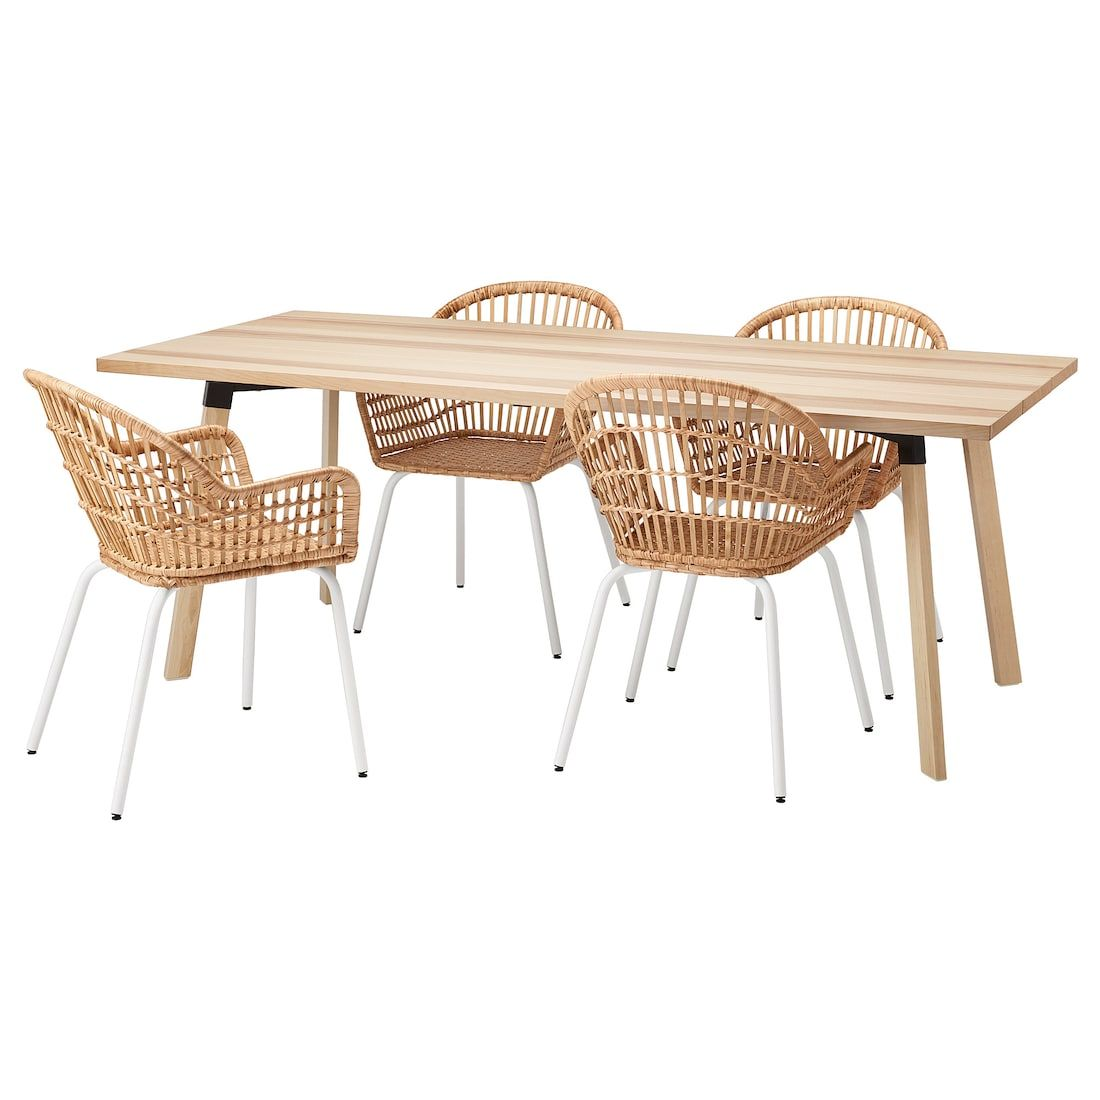 Rattansessel Ikea Ypperlig Nilsove Table And 4 Chairs Ash Rattan White Ikea